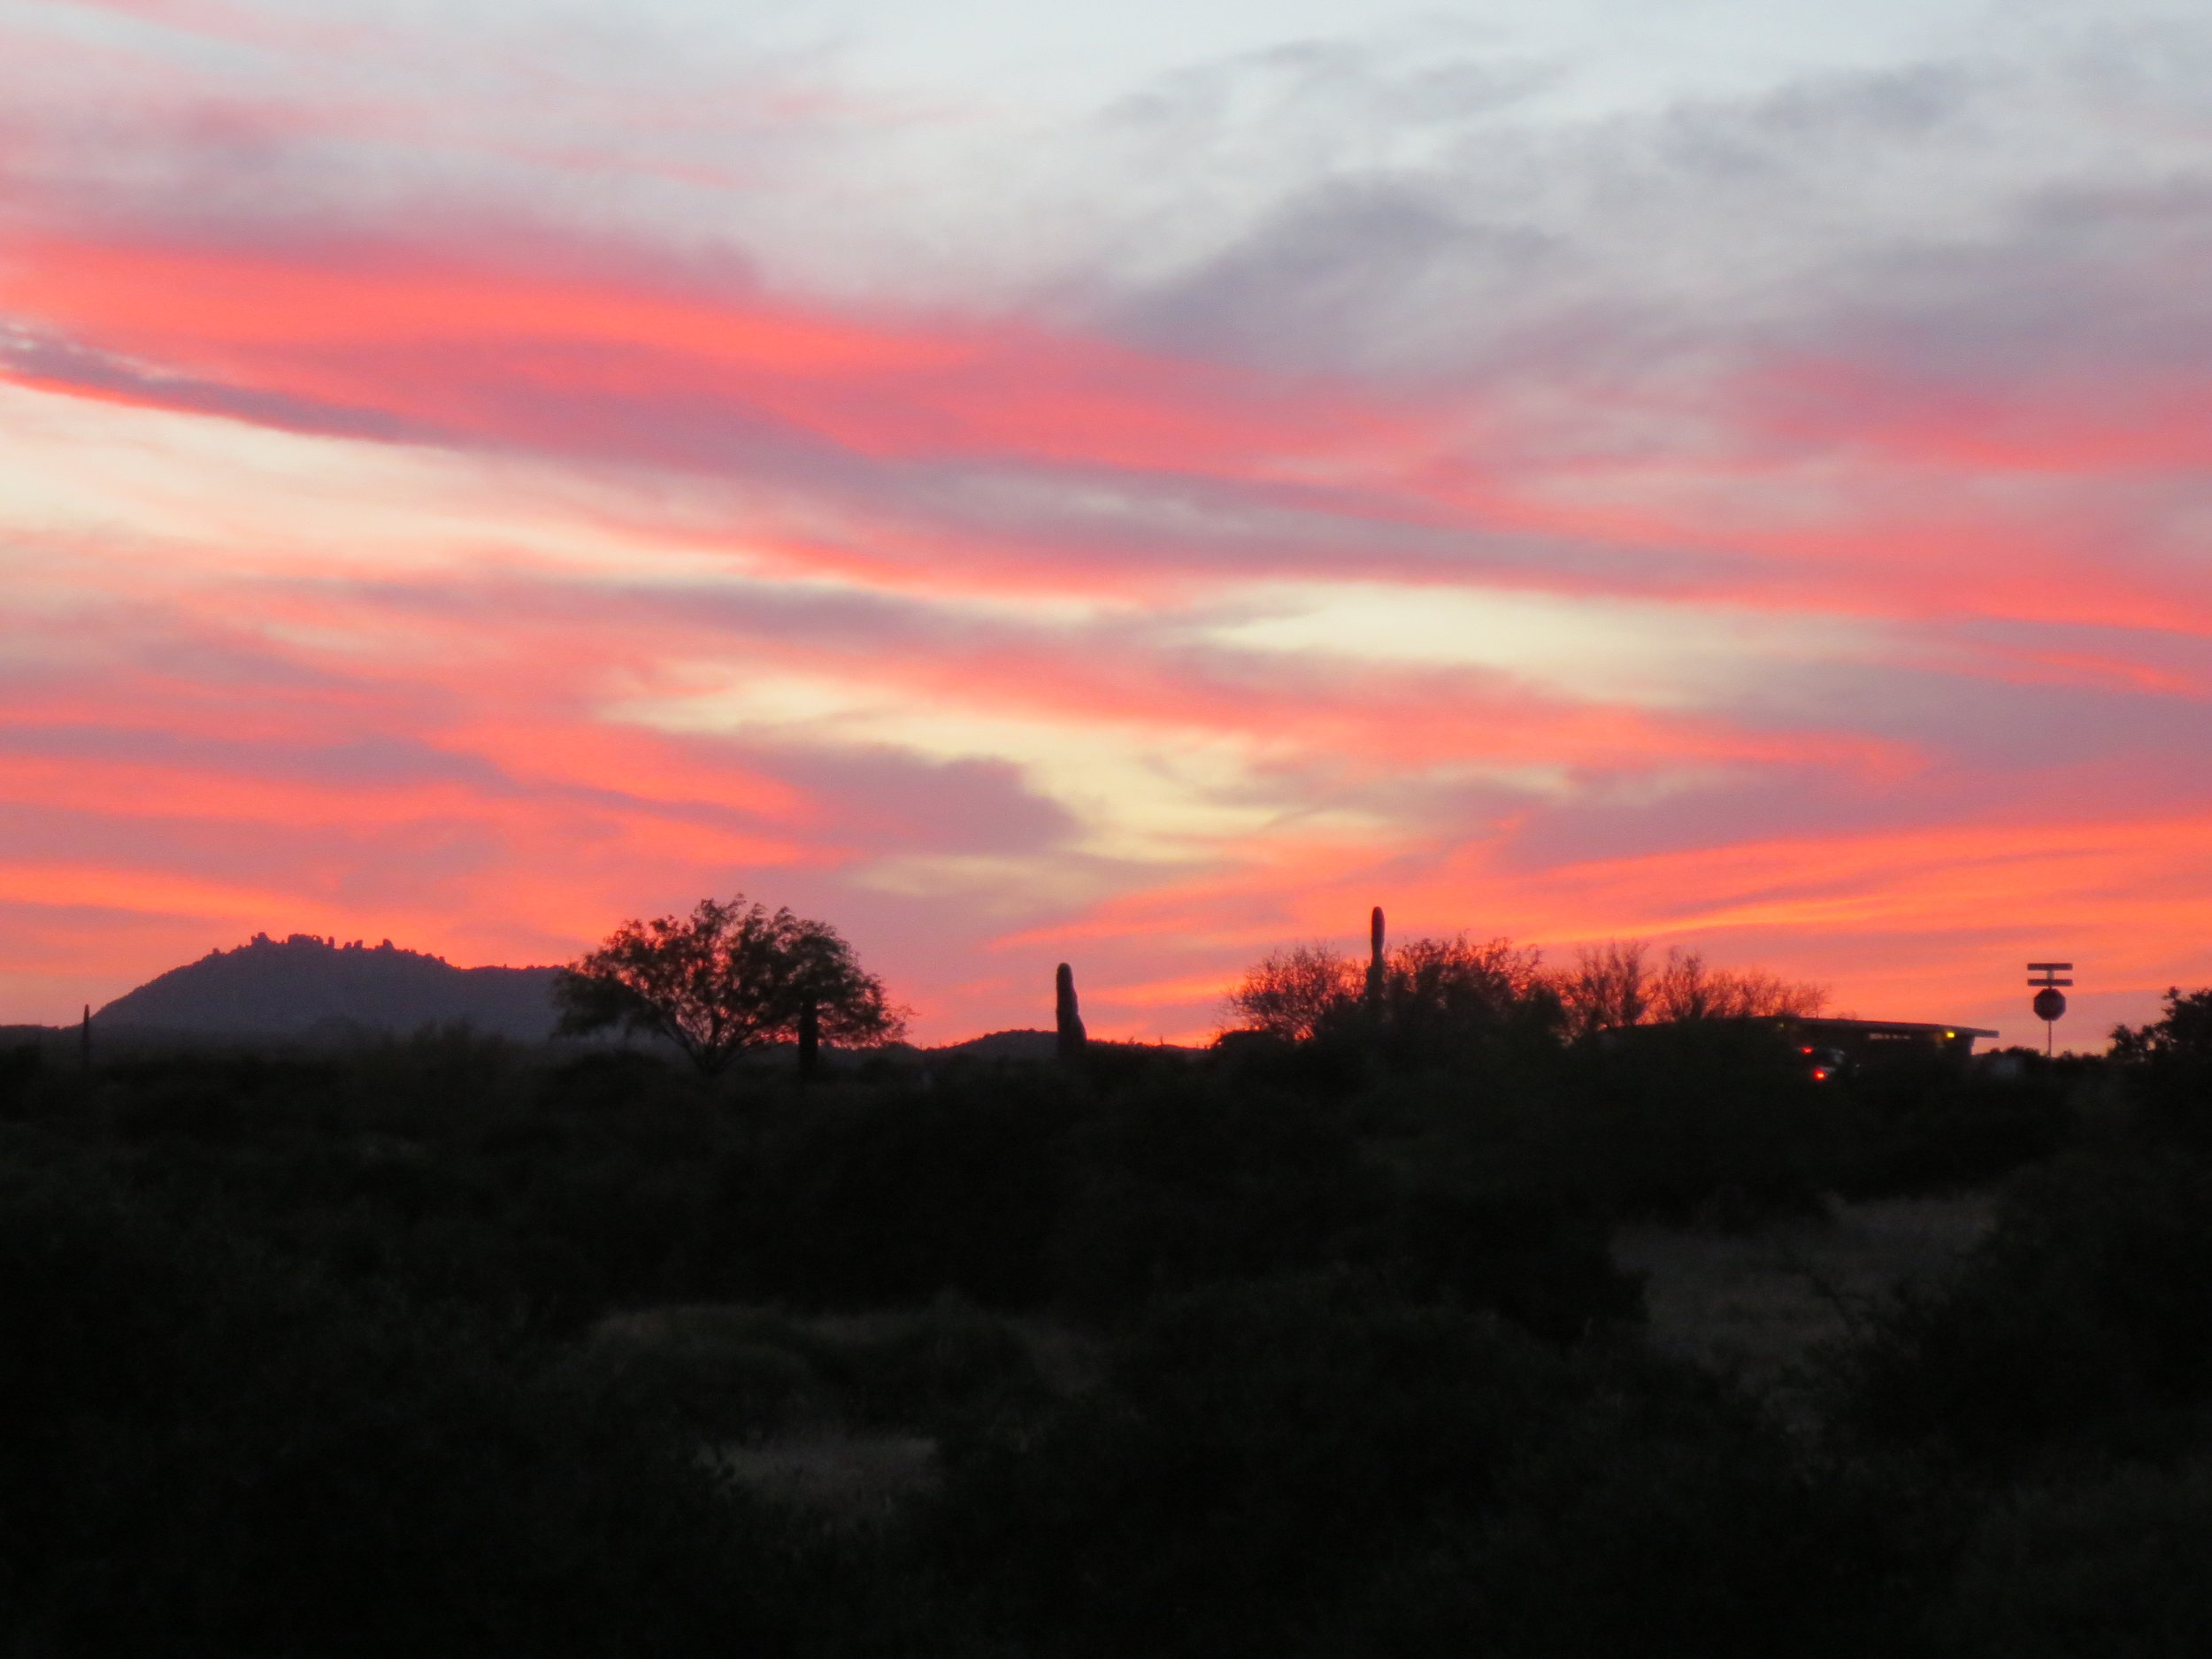 Nothing beats sunsets in the Southwest.